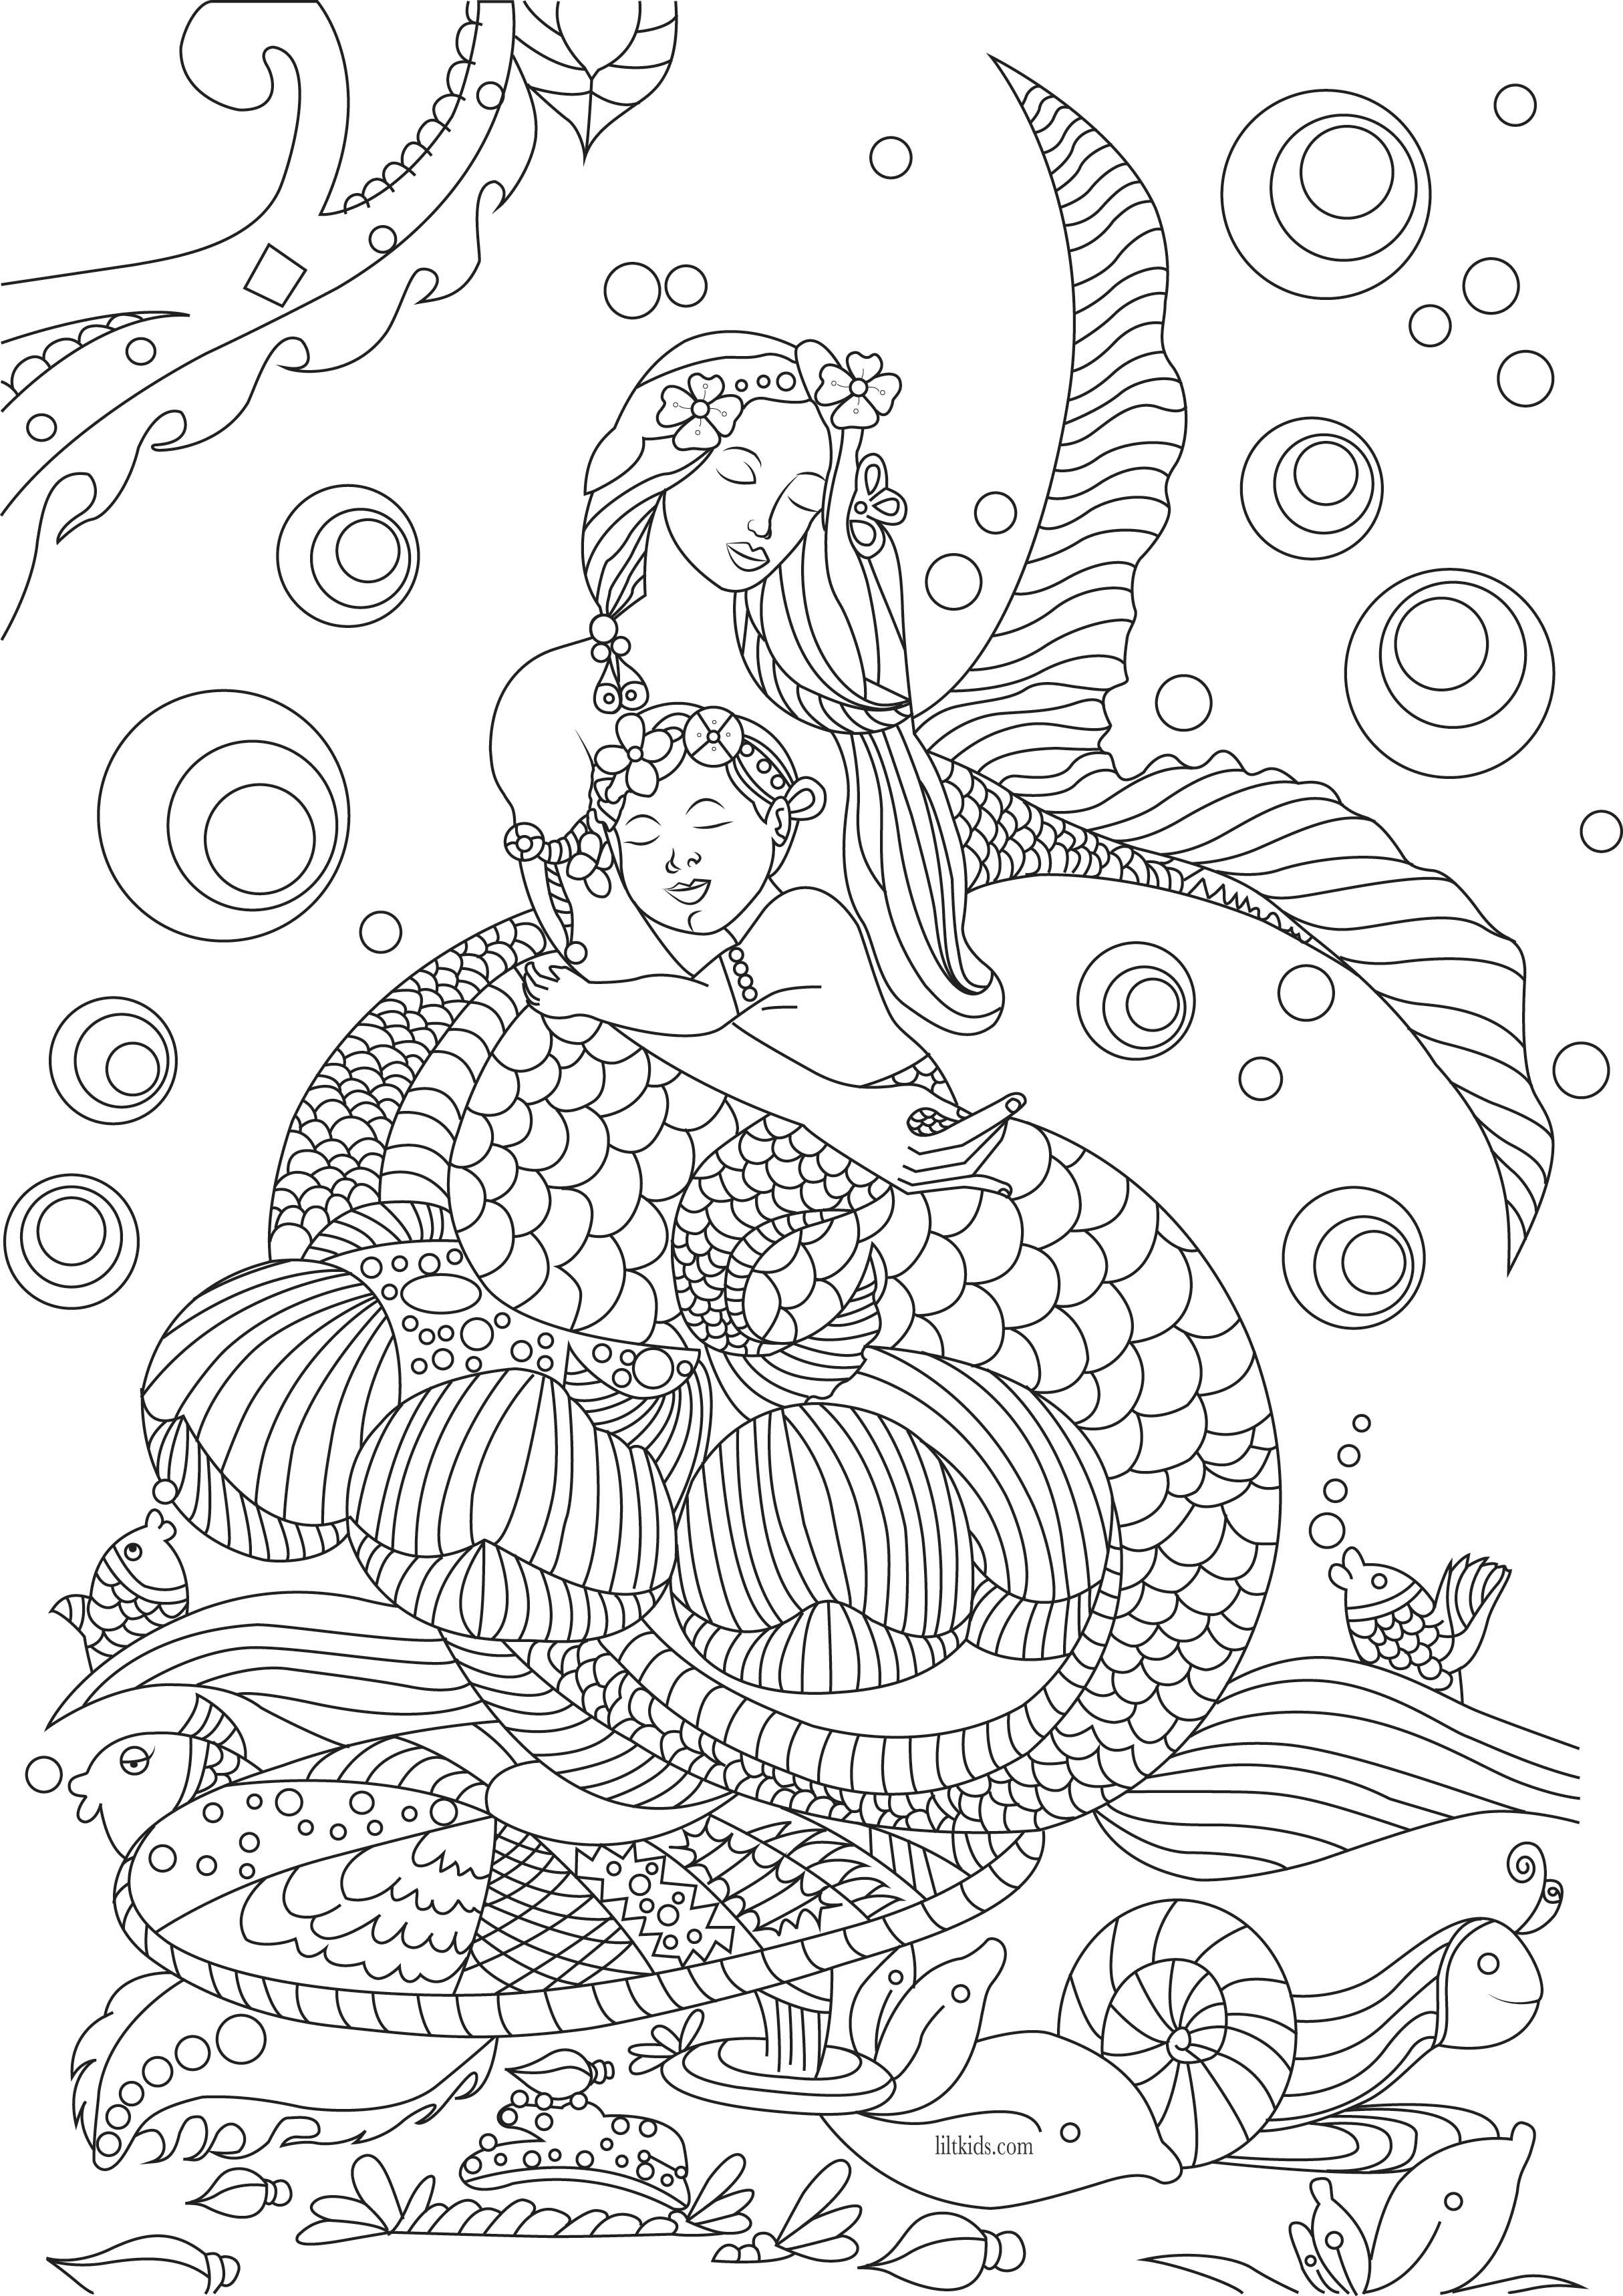 mermaid mandala coloring pages 100 free adult coloring pages dibujos dibujos de mermaid mandala coloring pages